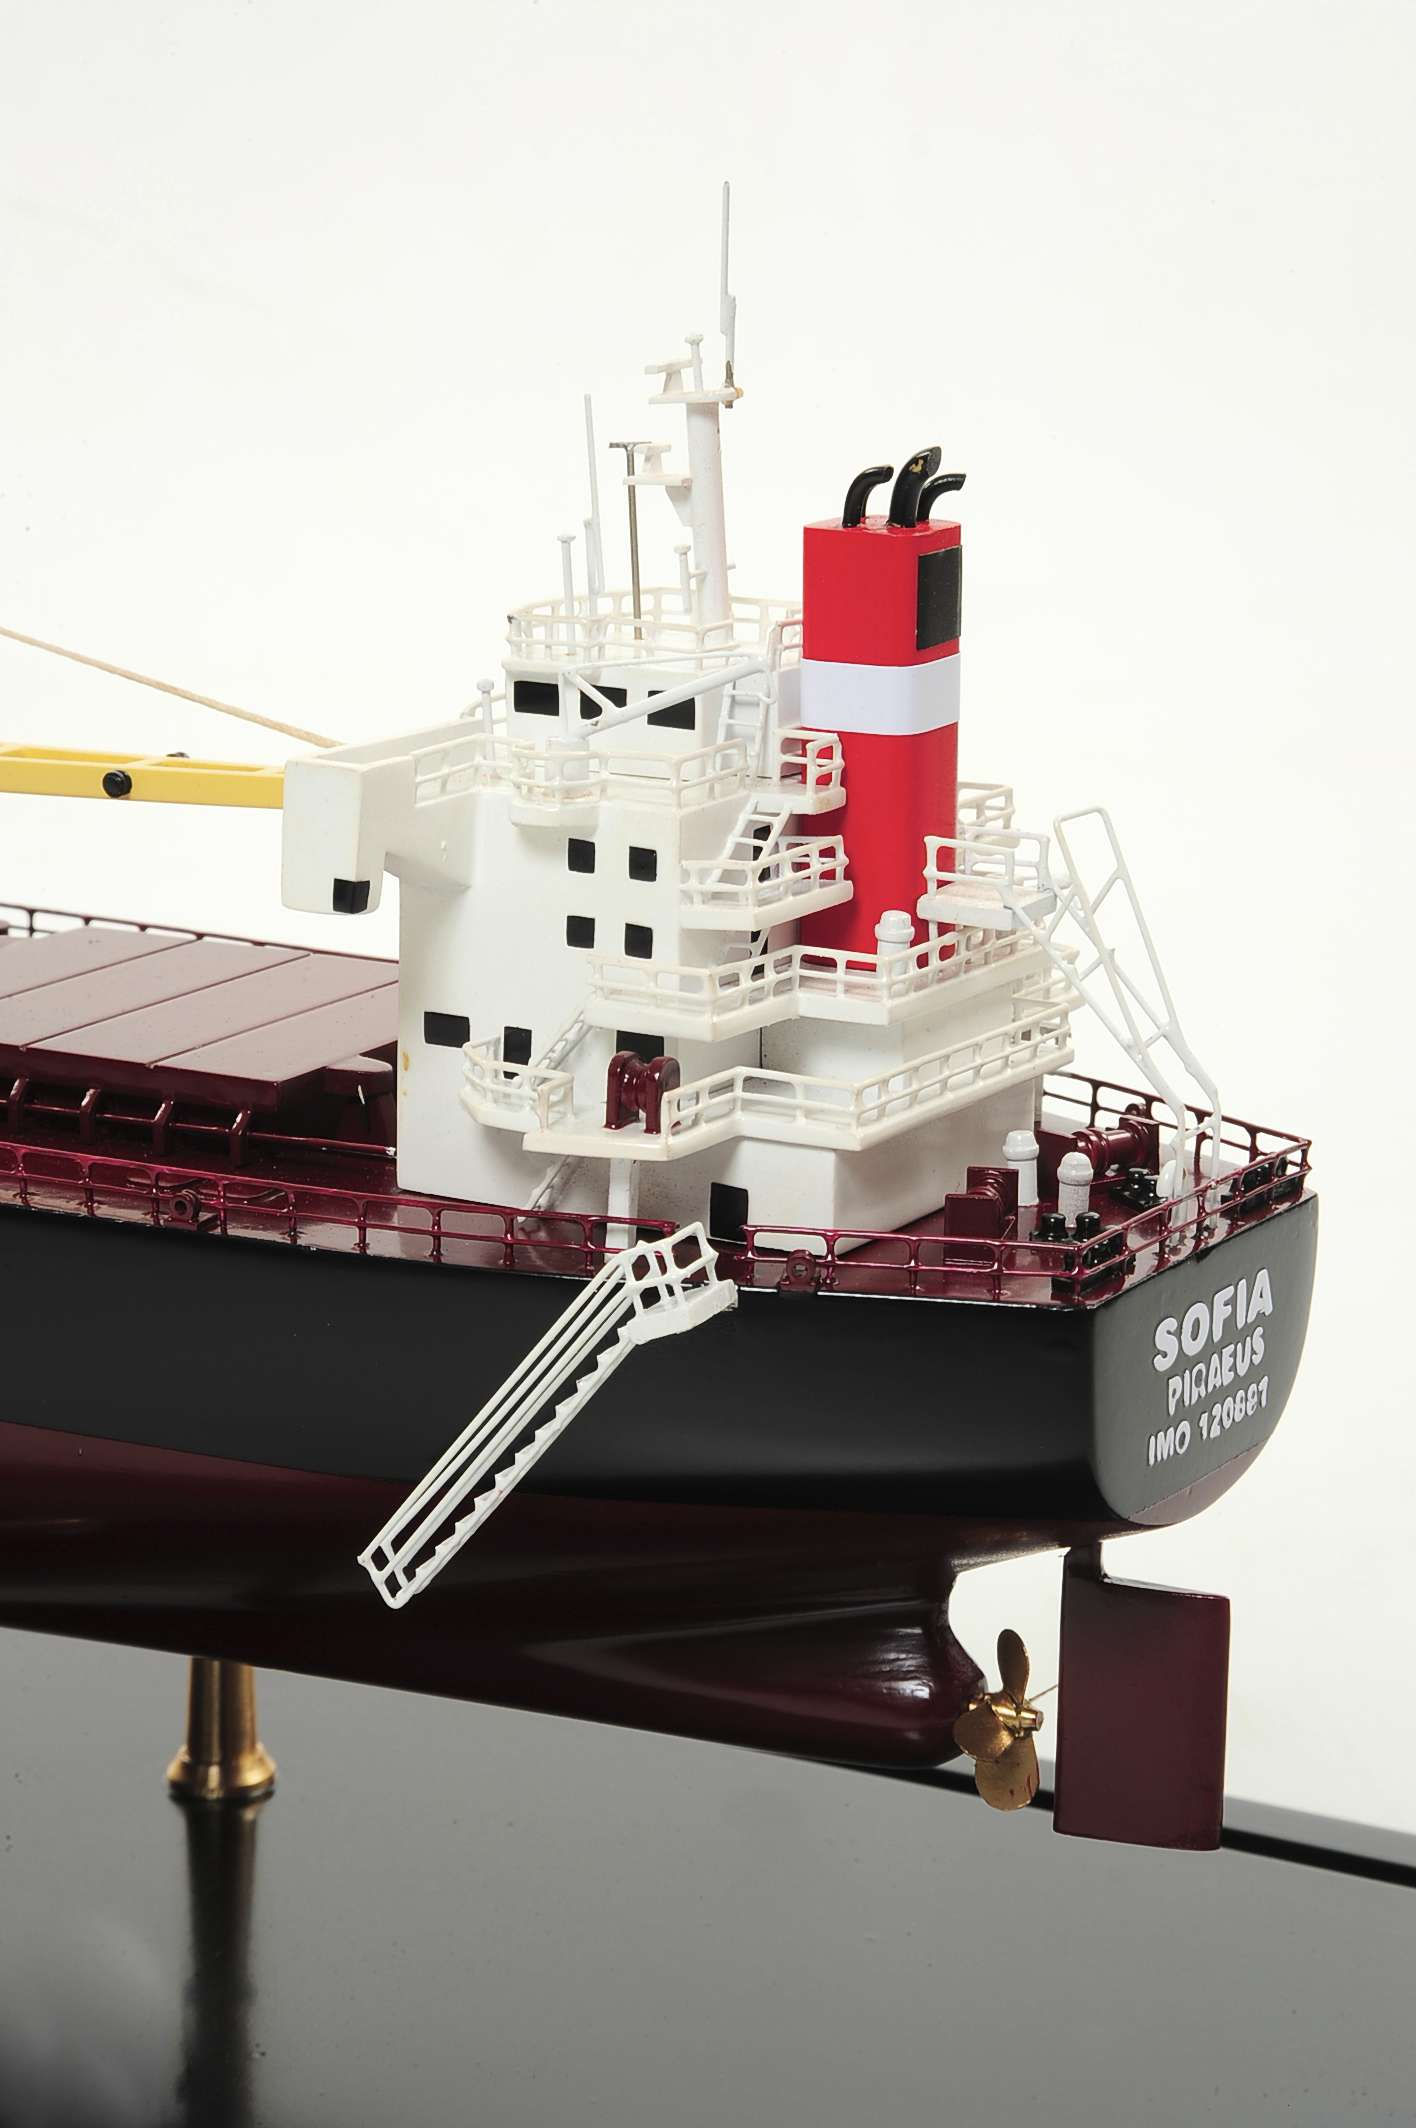 1450-4509-Bulk-Carrier-3-Model-Ship